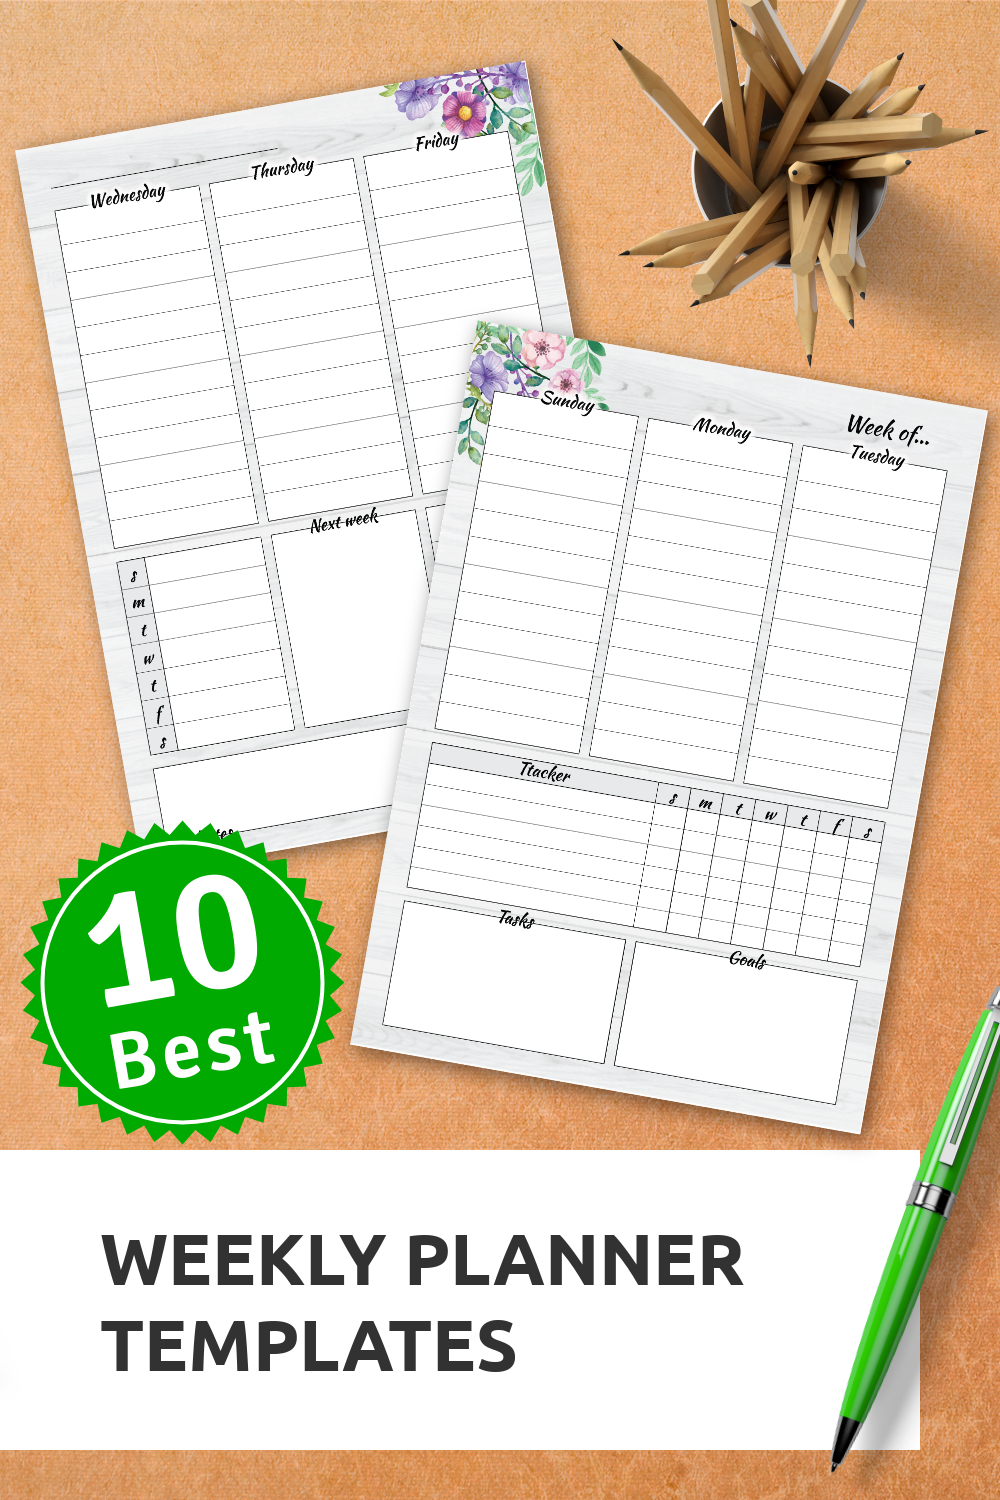 Weekly Planner Templates   Weekly Planner Template, Weekly with Design Your Life Planner Pdf Photo